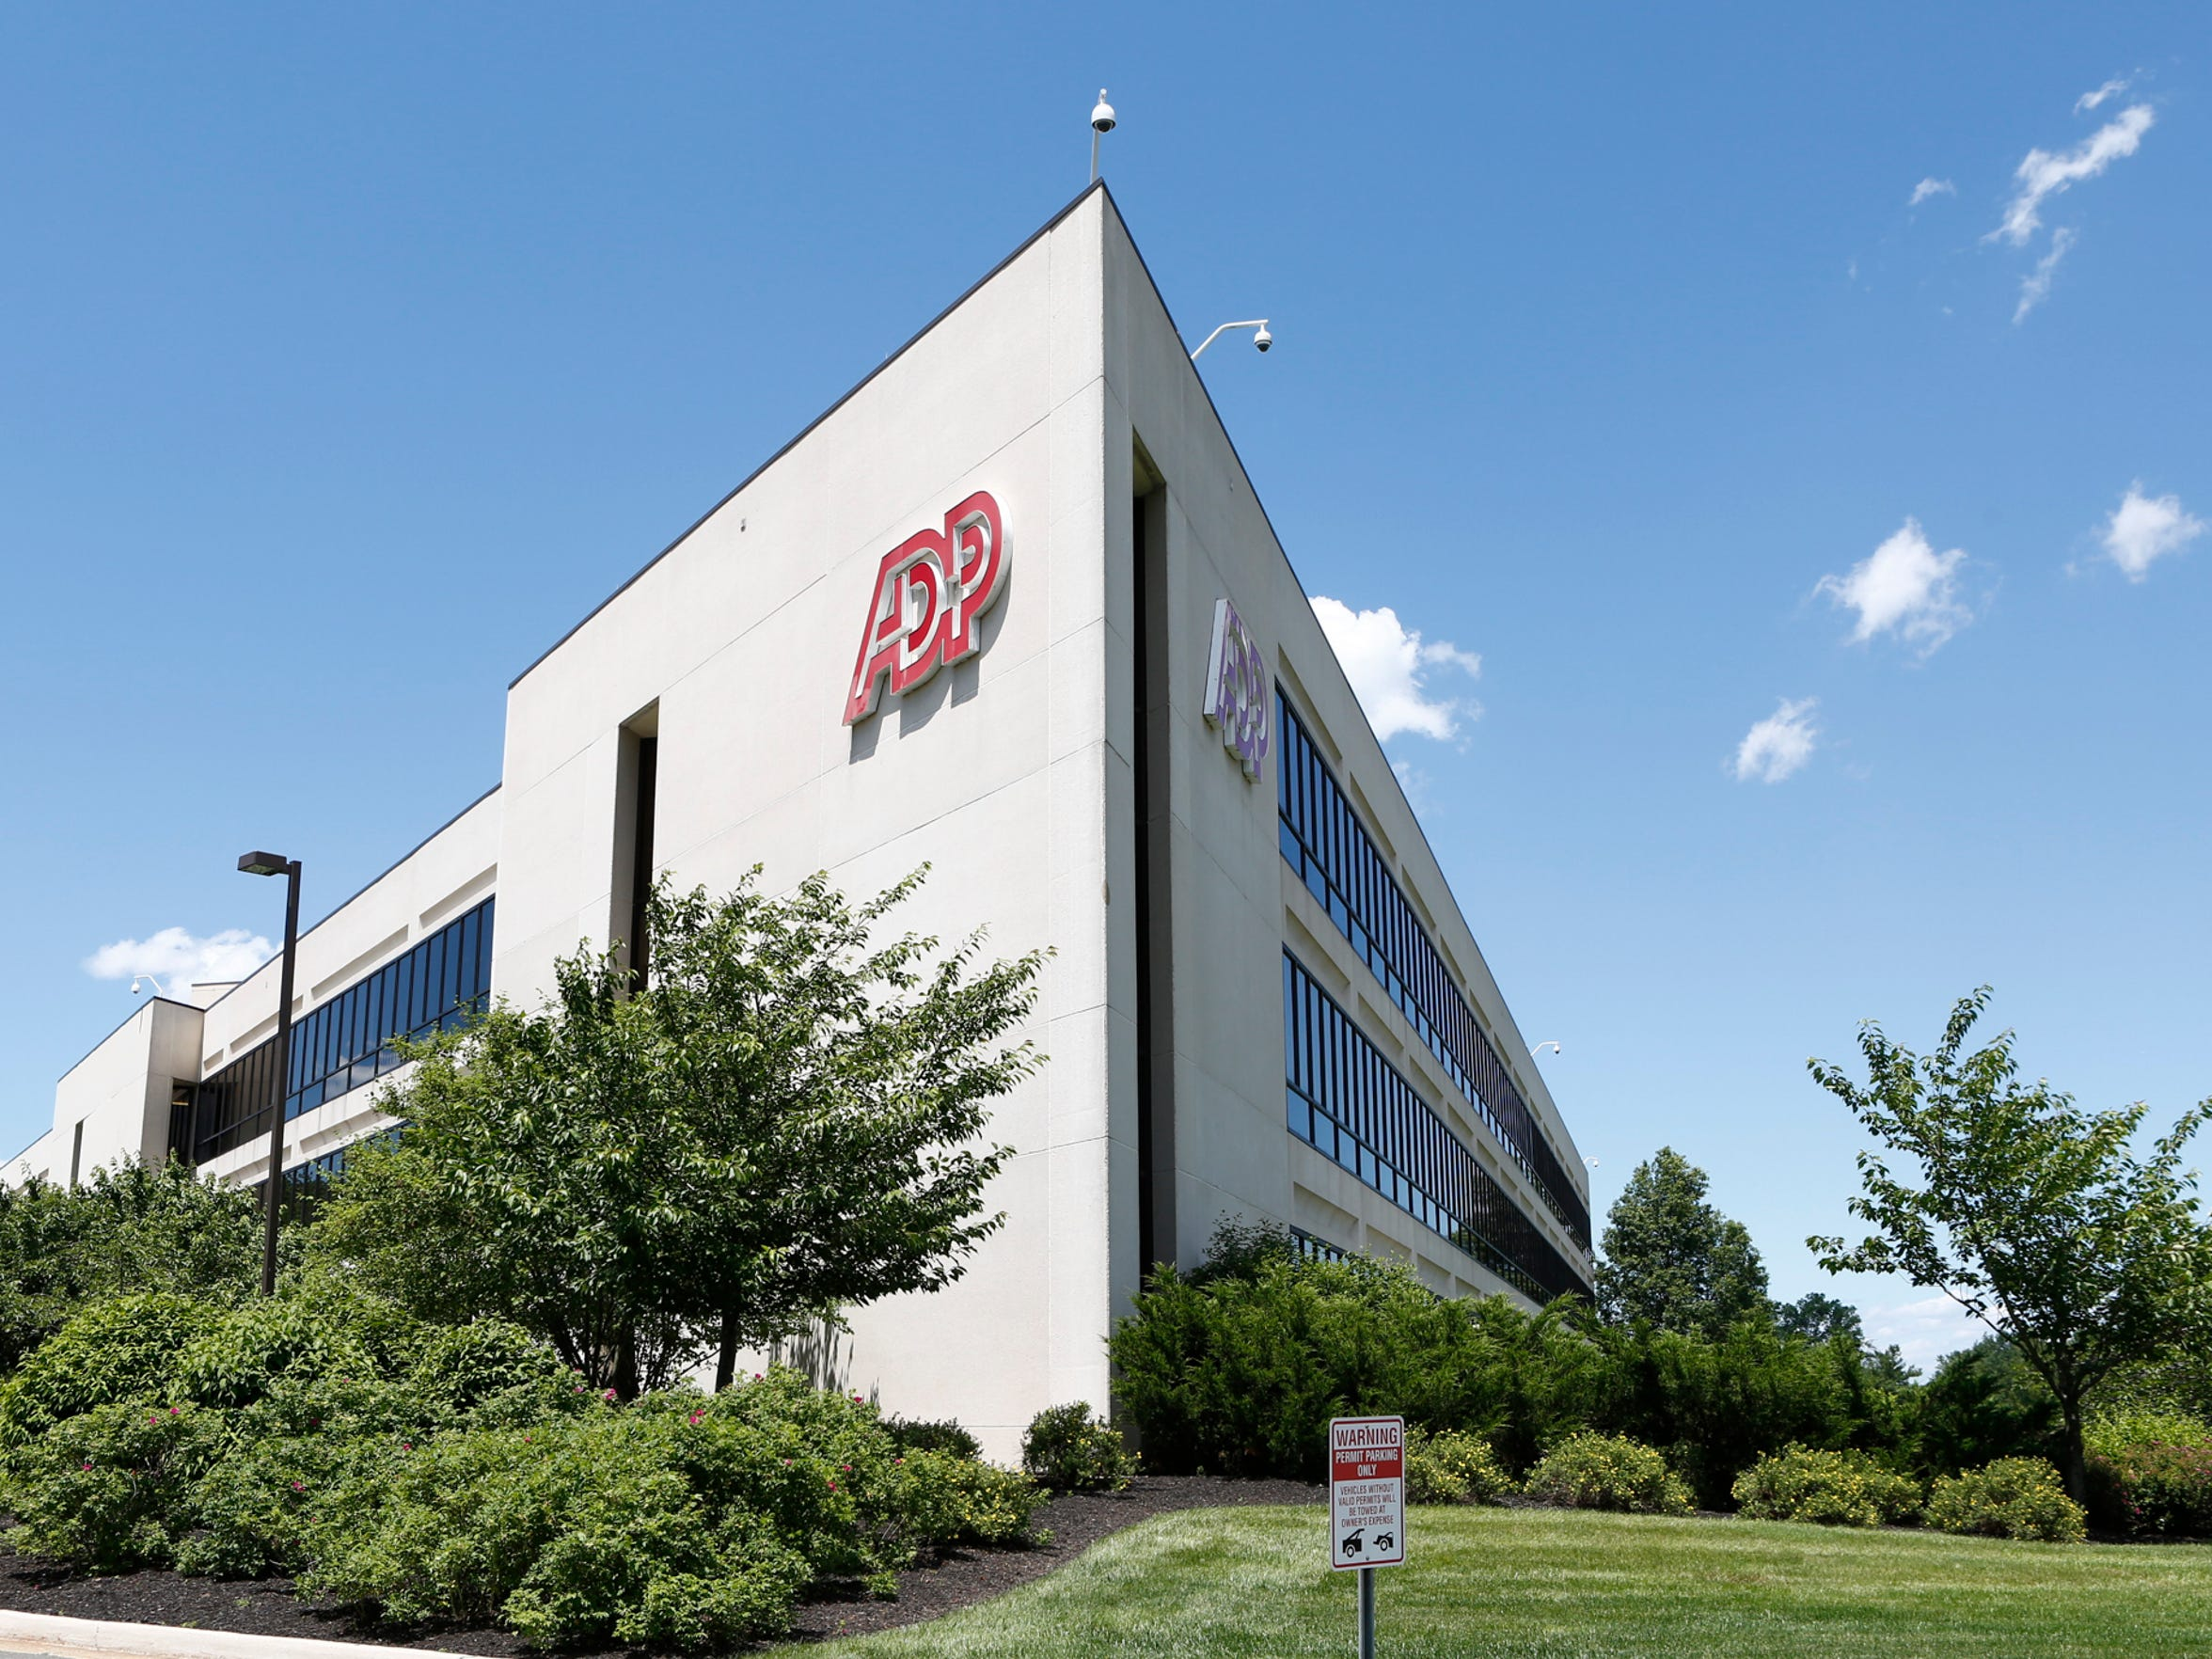 The ADP headquarters in Roseland, N. J. Tuesday, June